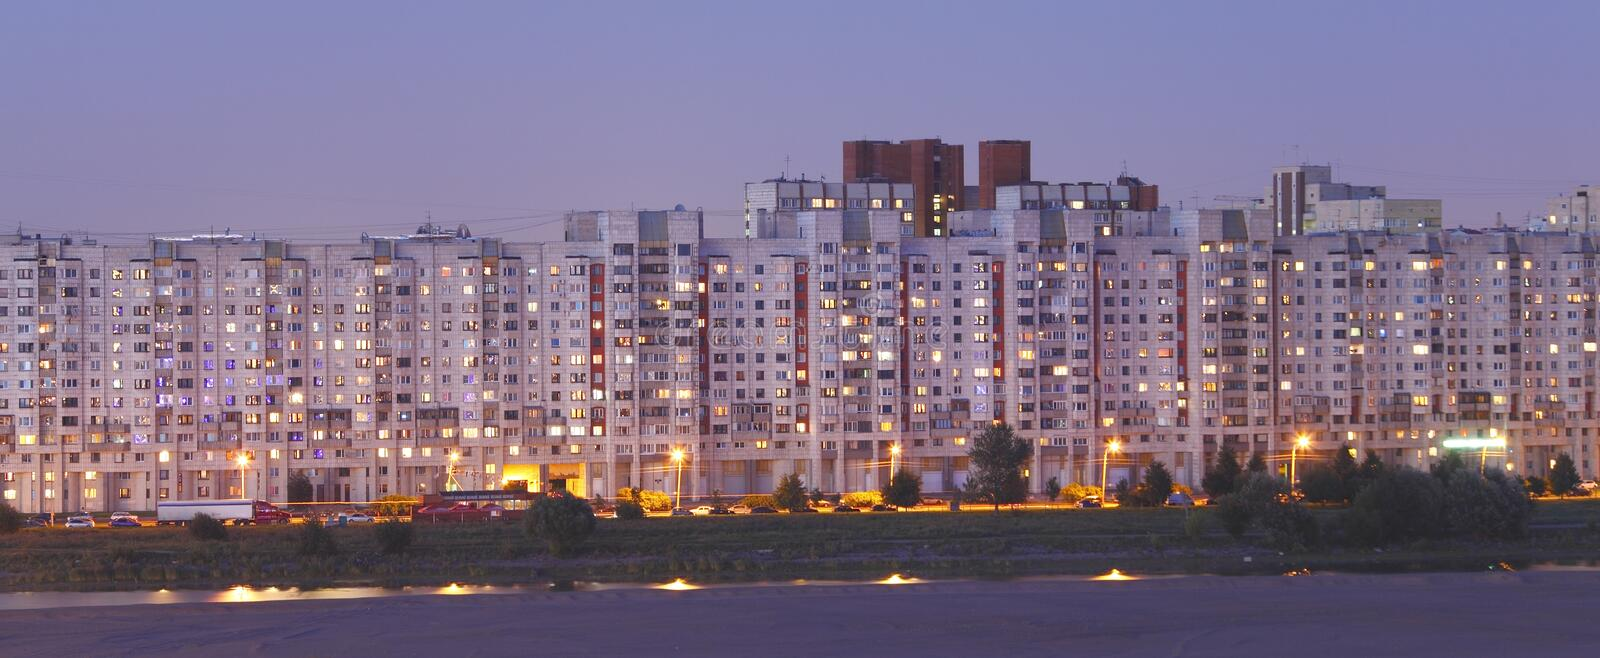 Download Russia living stock image. Image of home, high, evening - 21160581